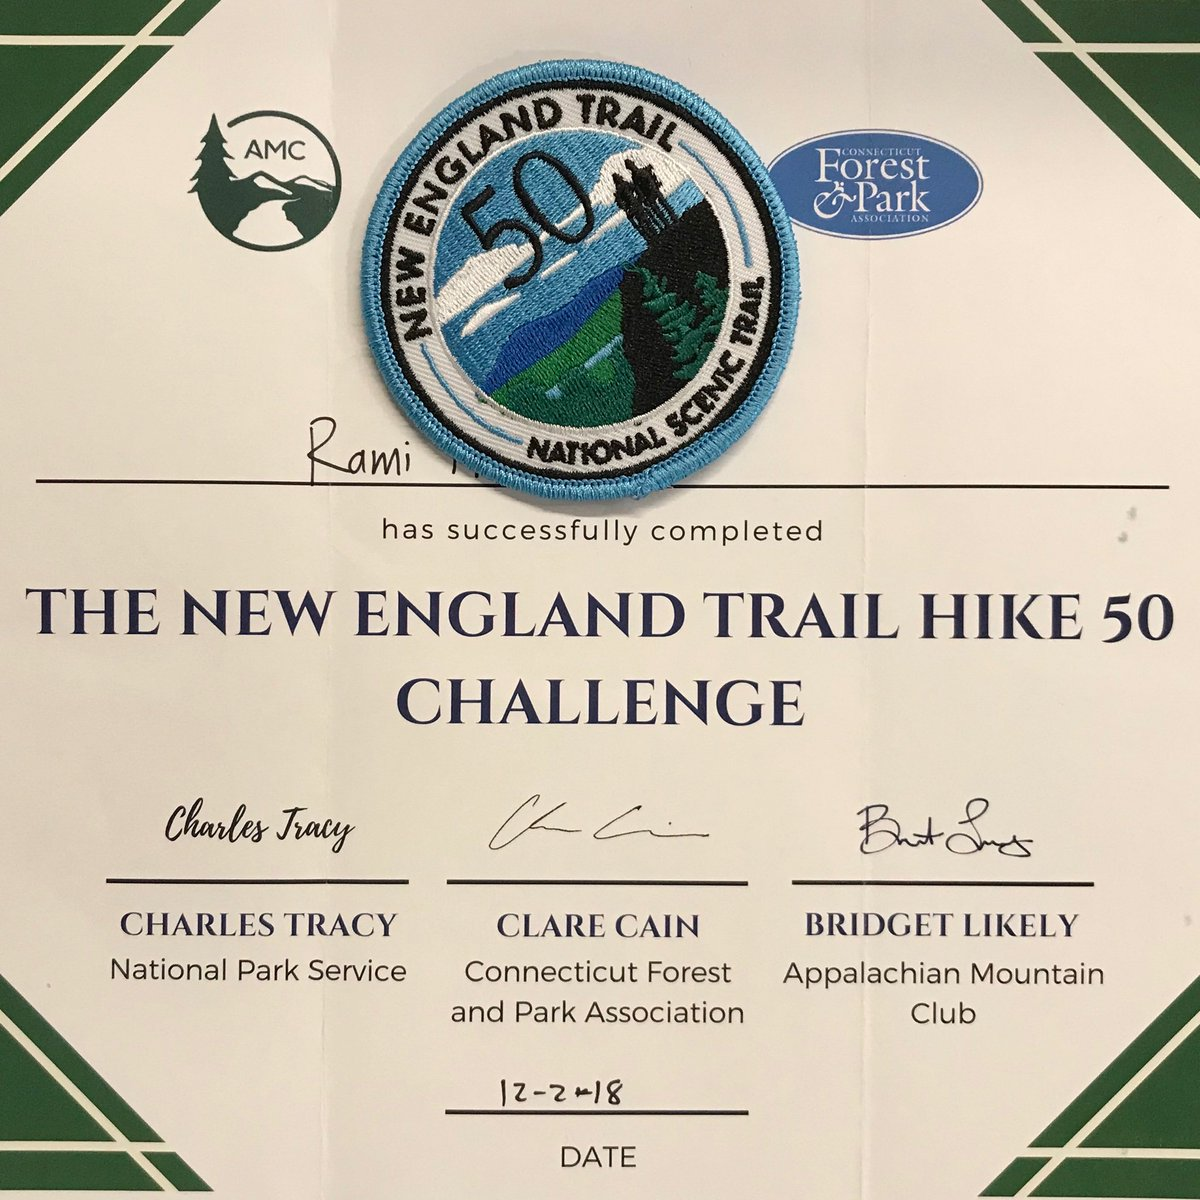 The things I do for a patch of New England Trail 50 mile challenge